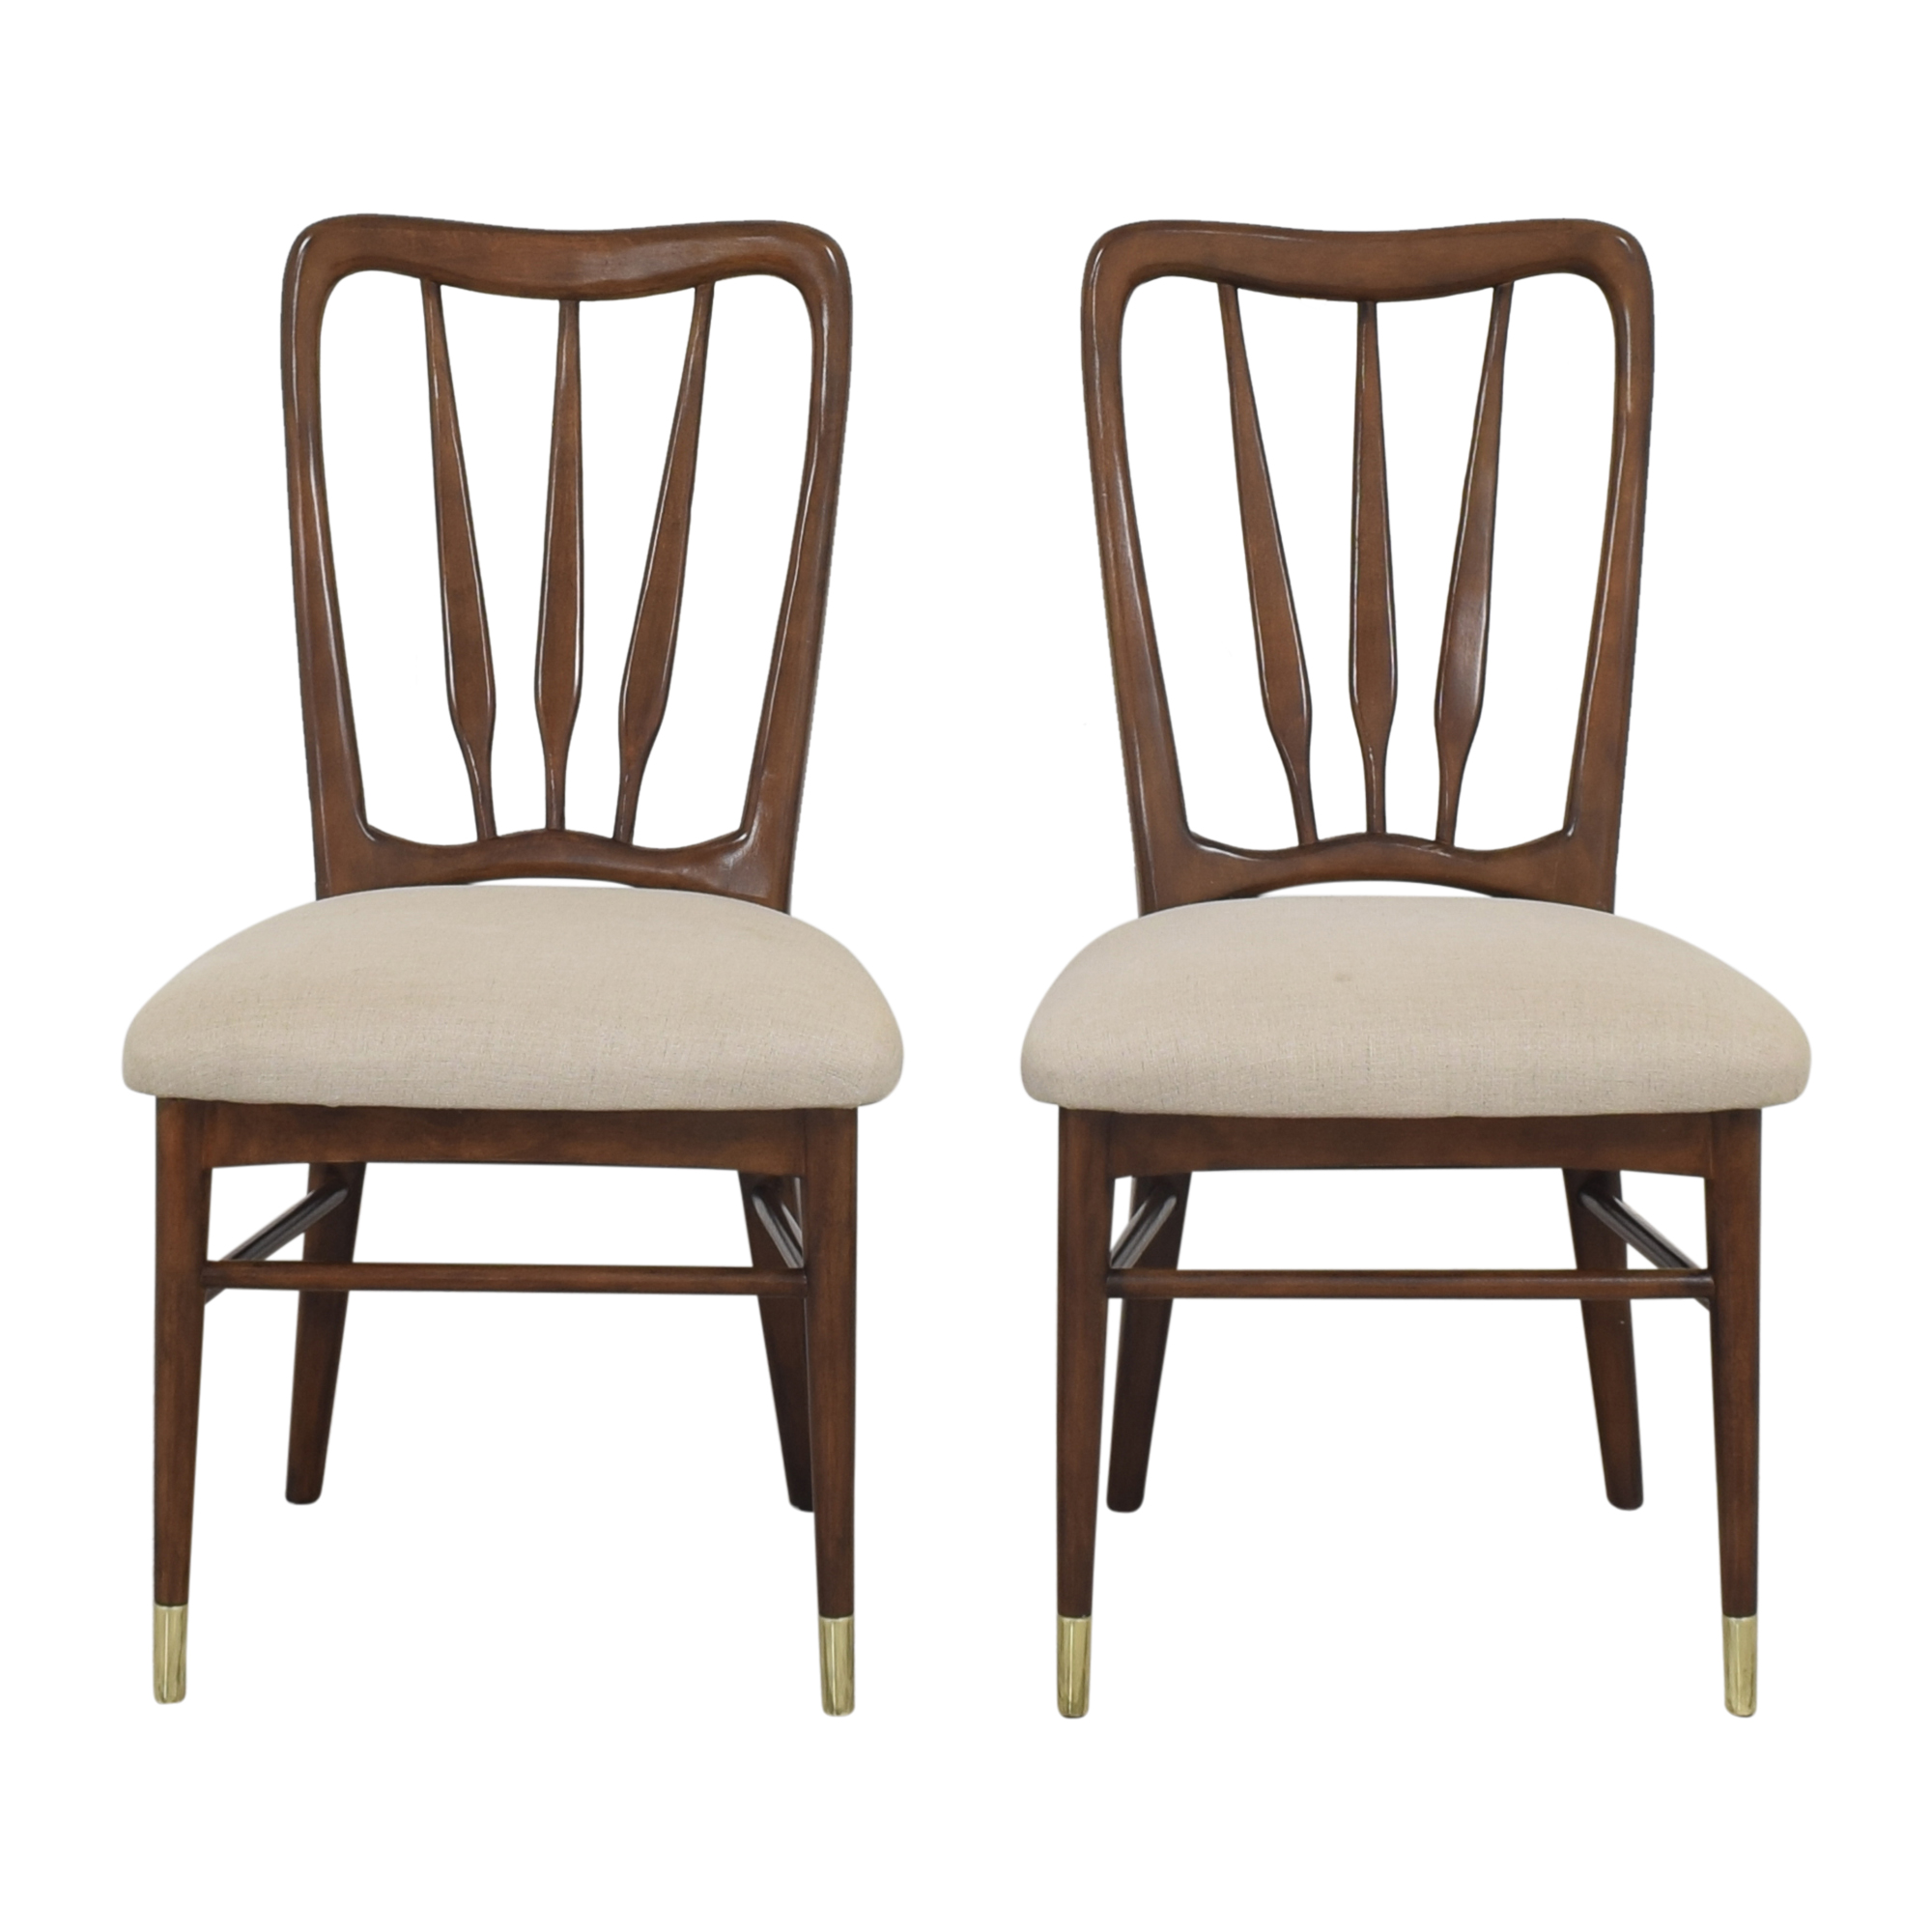 Anthropologie Anthropologie Haverhill Dining Chairs price